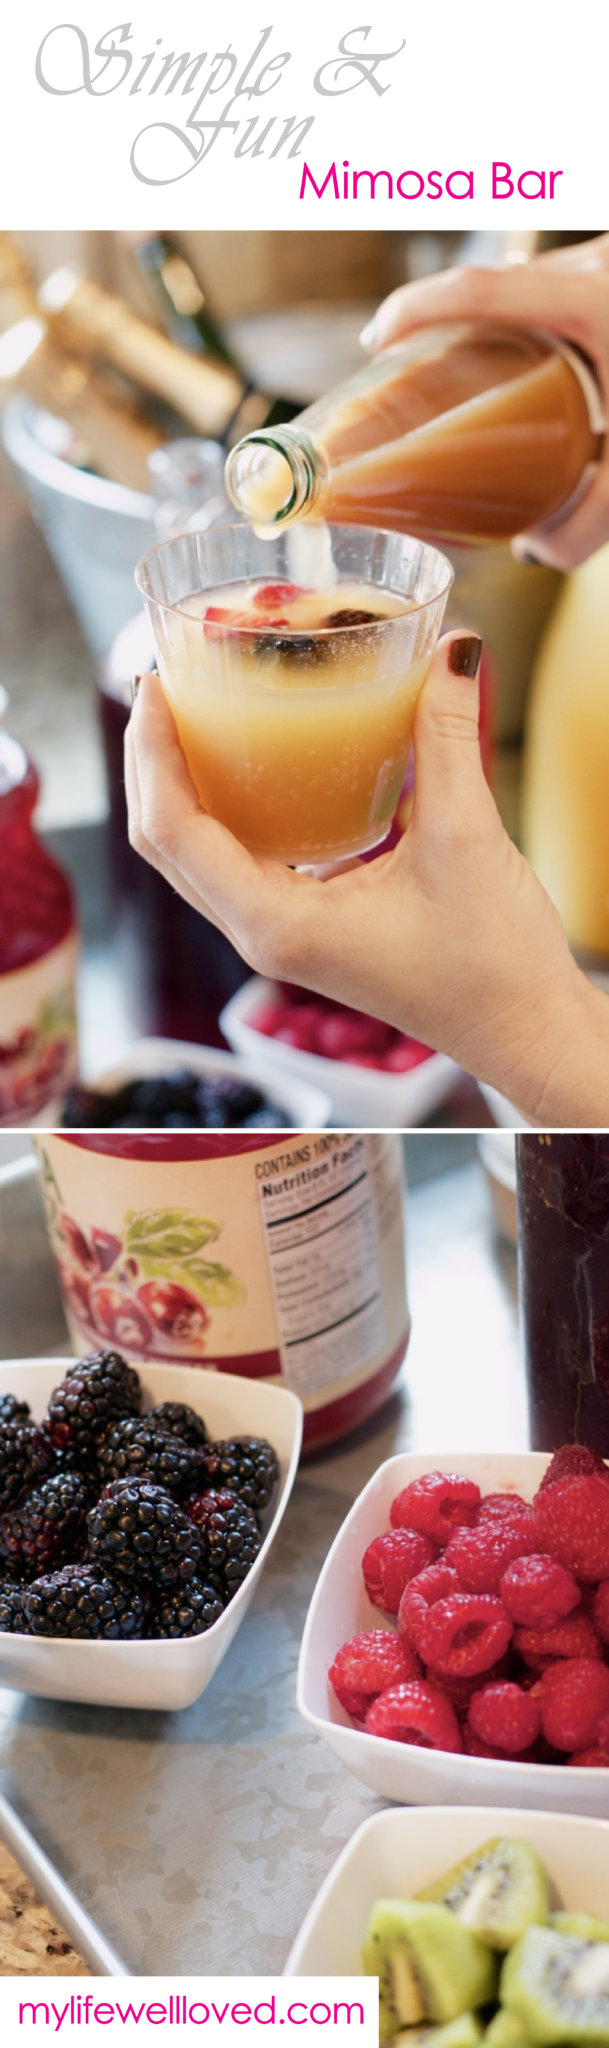 Mimosa Bar from Heather of MyLifeWellLoved.com // brunch ideas